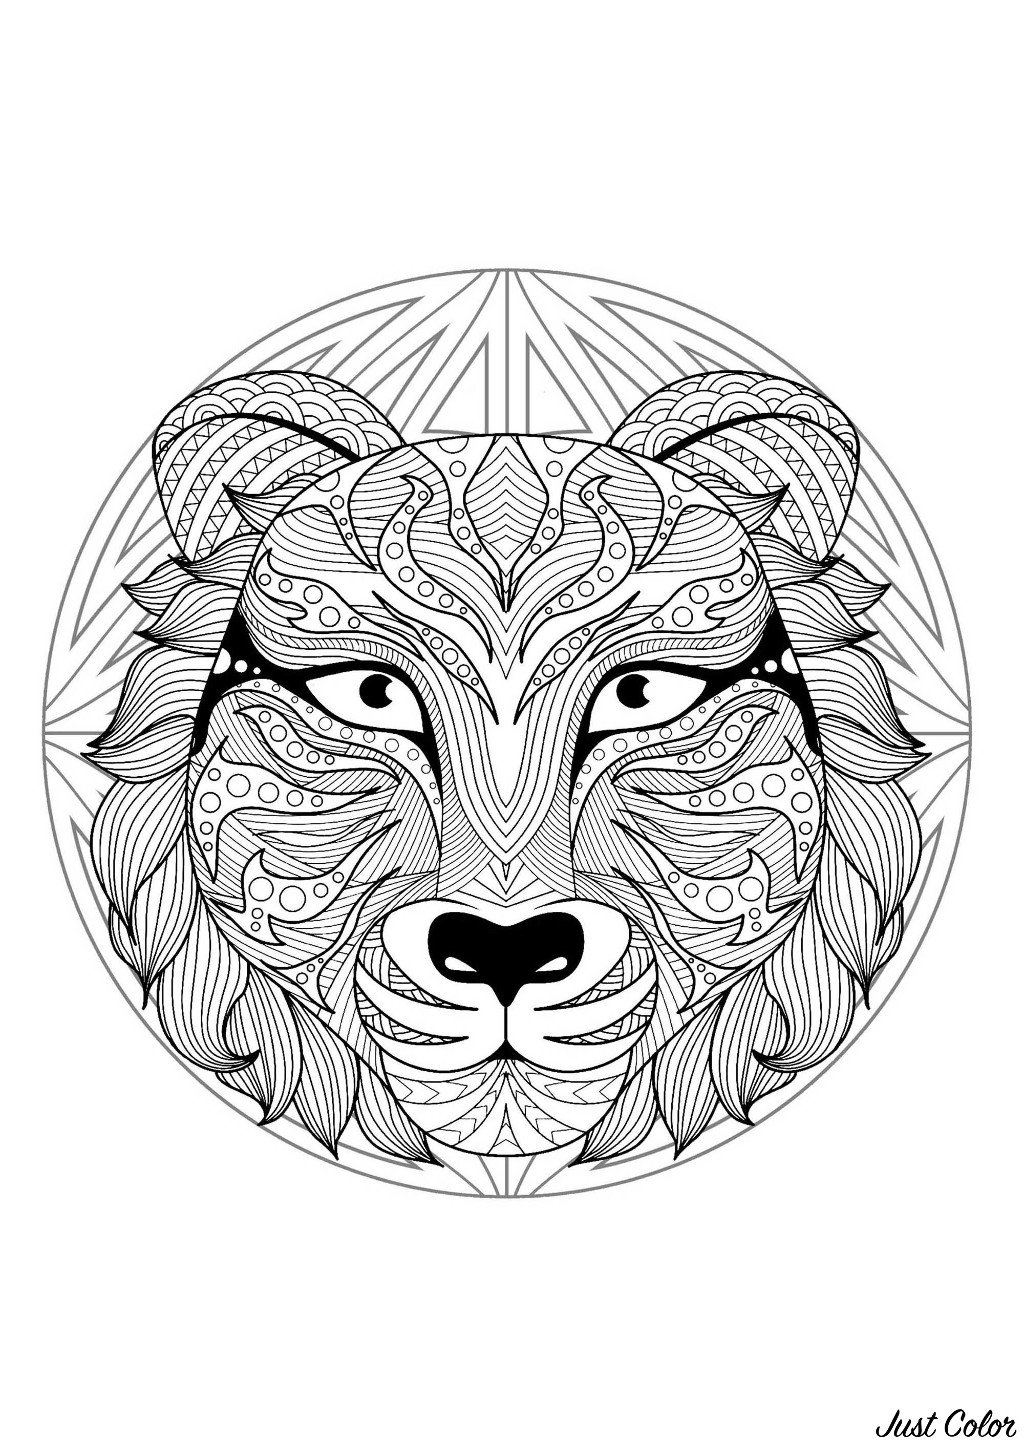 Mandala to color with very special Tiger head and simple patterns in background